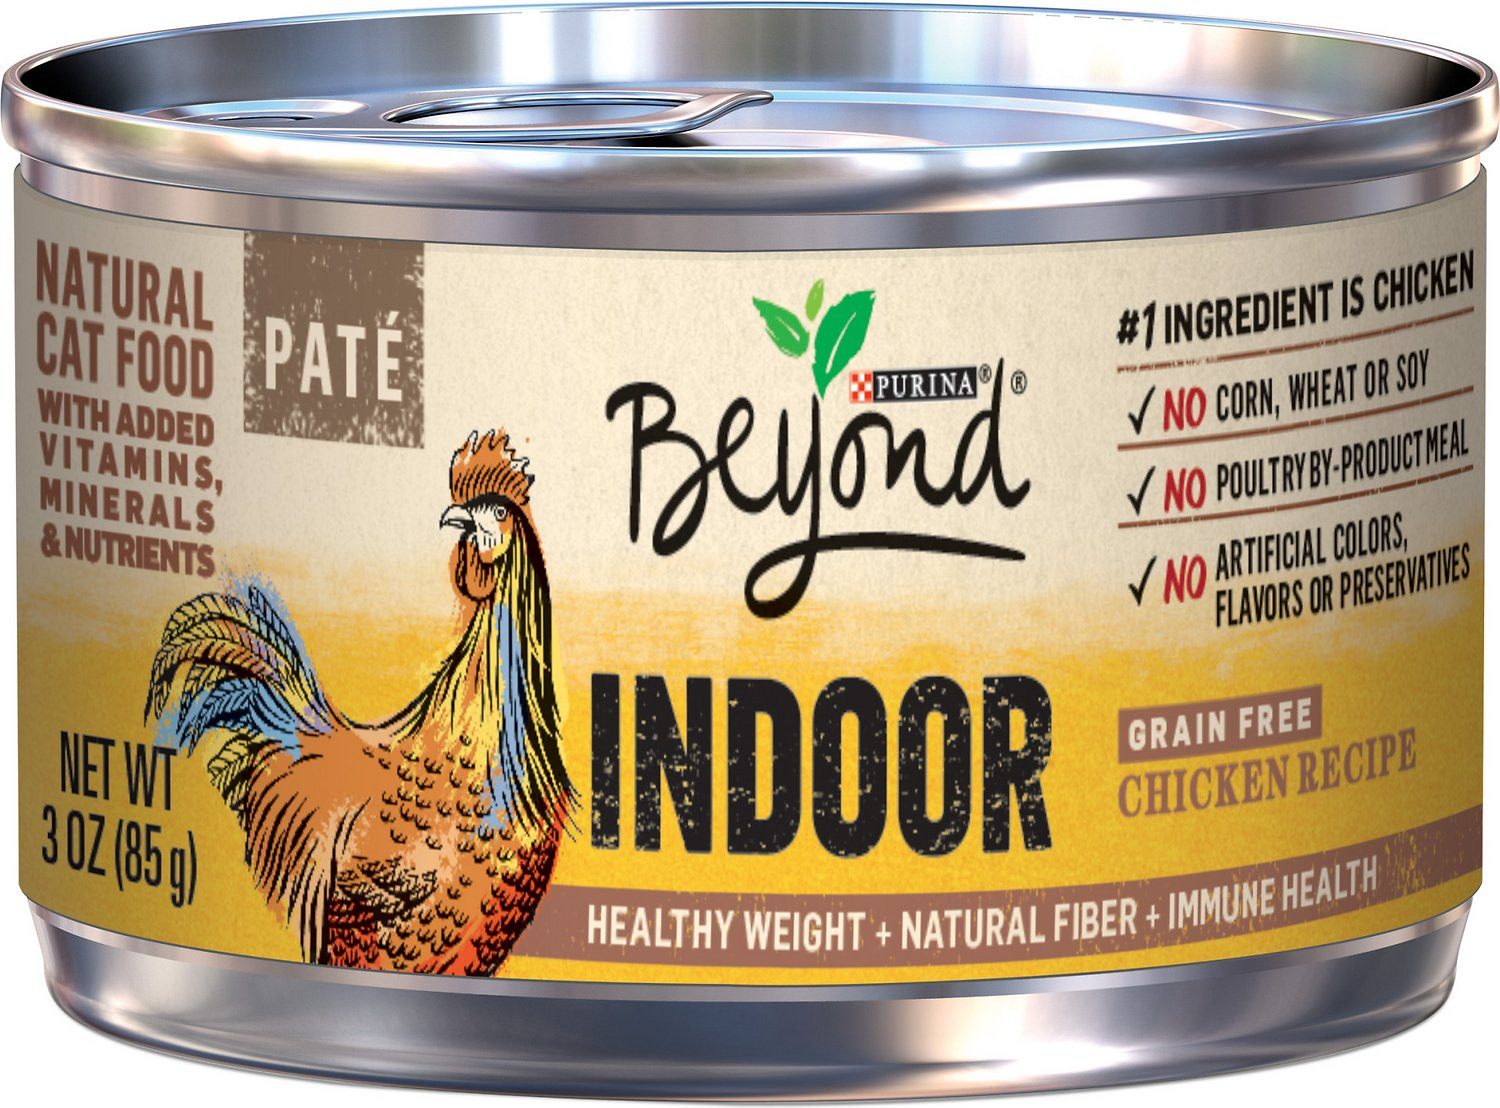 Purina Beyond Cat Food >> Purina Beyond Indoor Grain Free Chicken Recipe Canned Cat Food 3 Oz Case Of 12